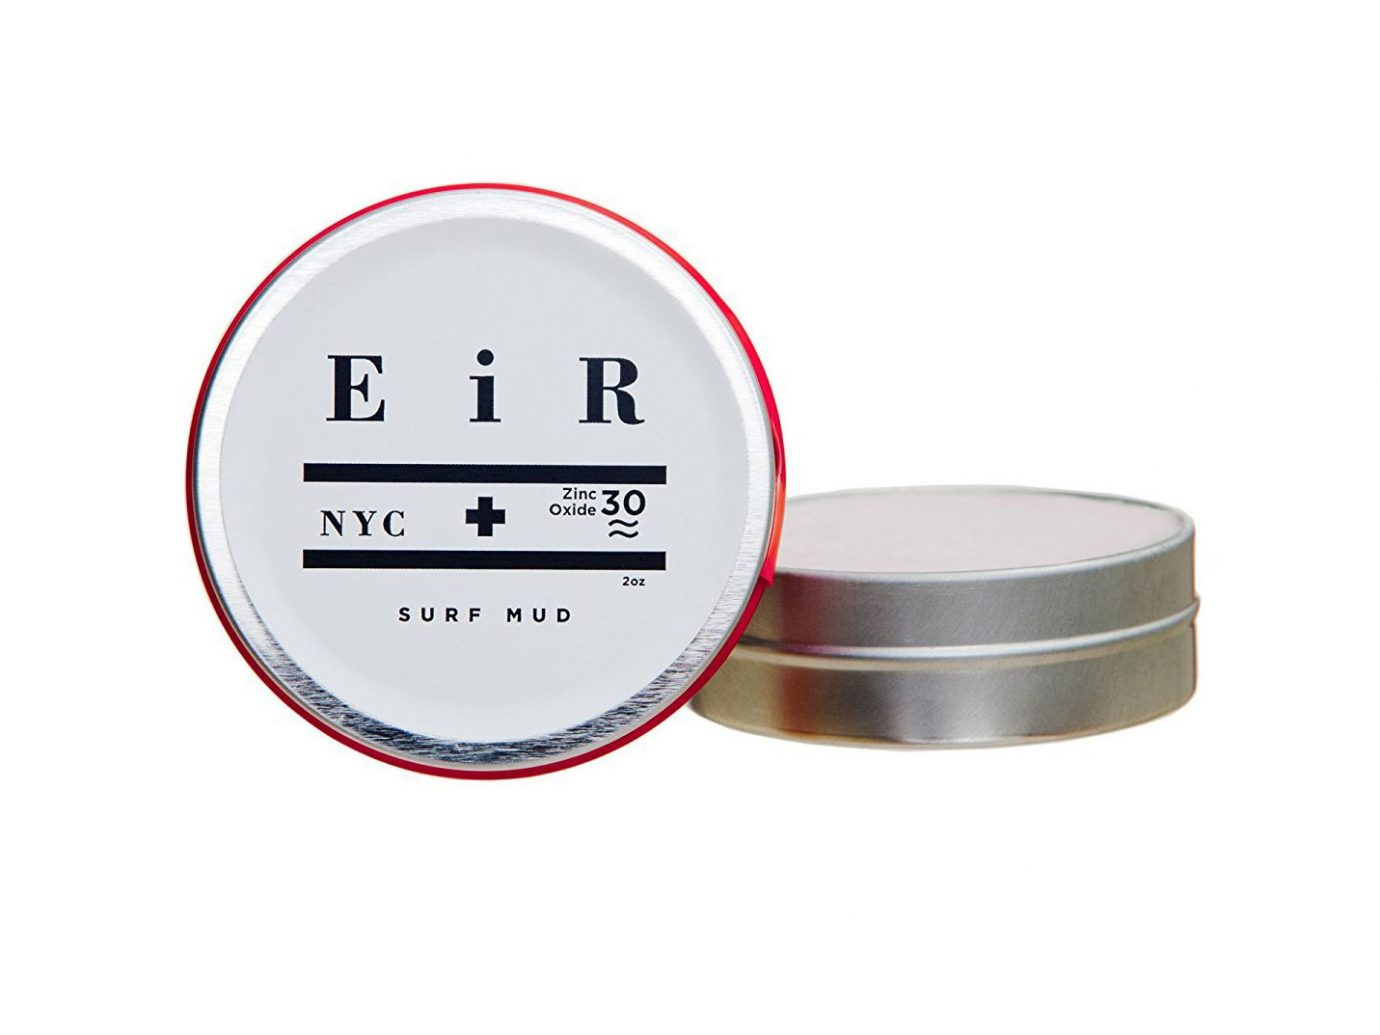 EiR NYC All Natural Surf Mud Waterproof Sunscreen